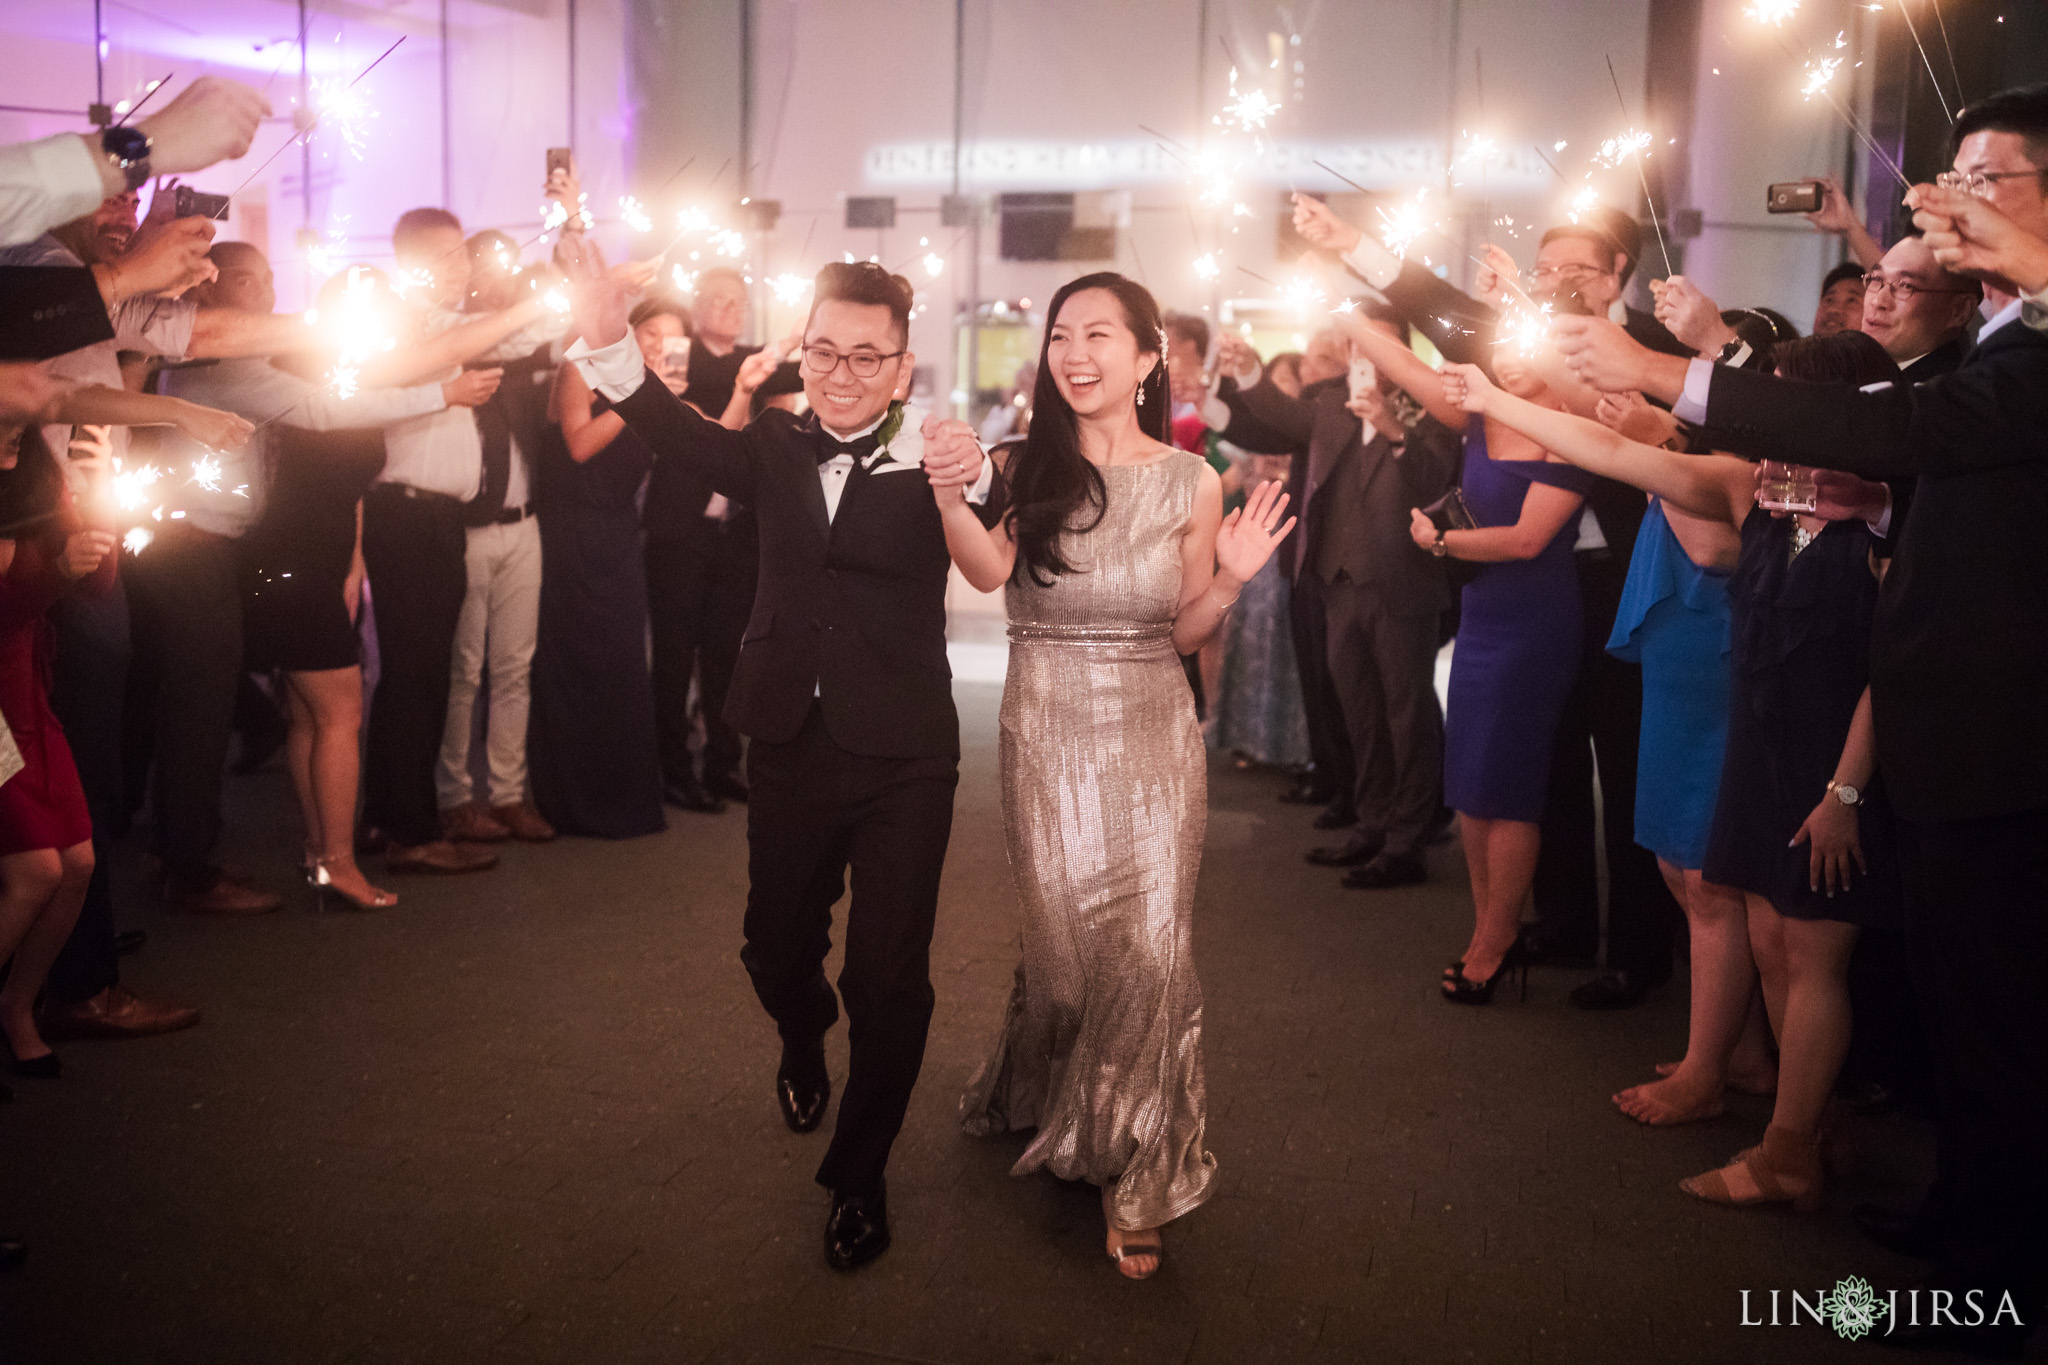 40 segerstrom center for the arts costa mesa wedding photography